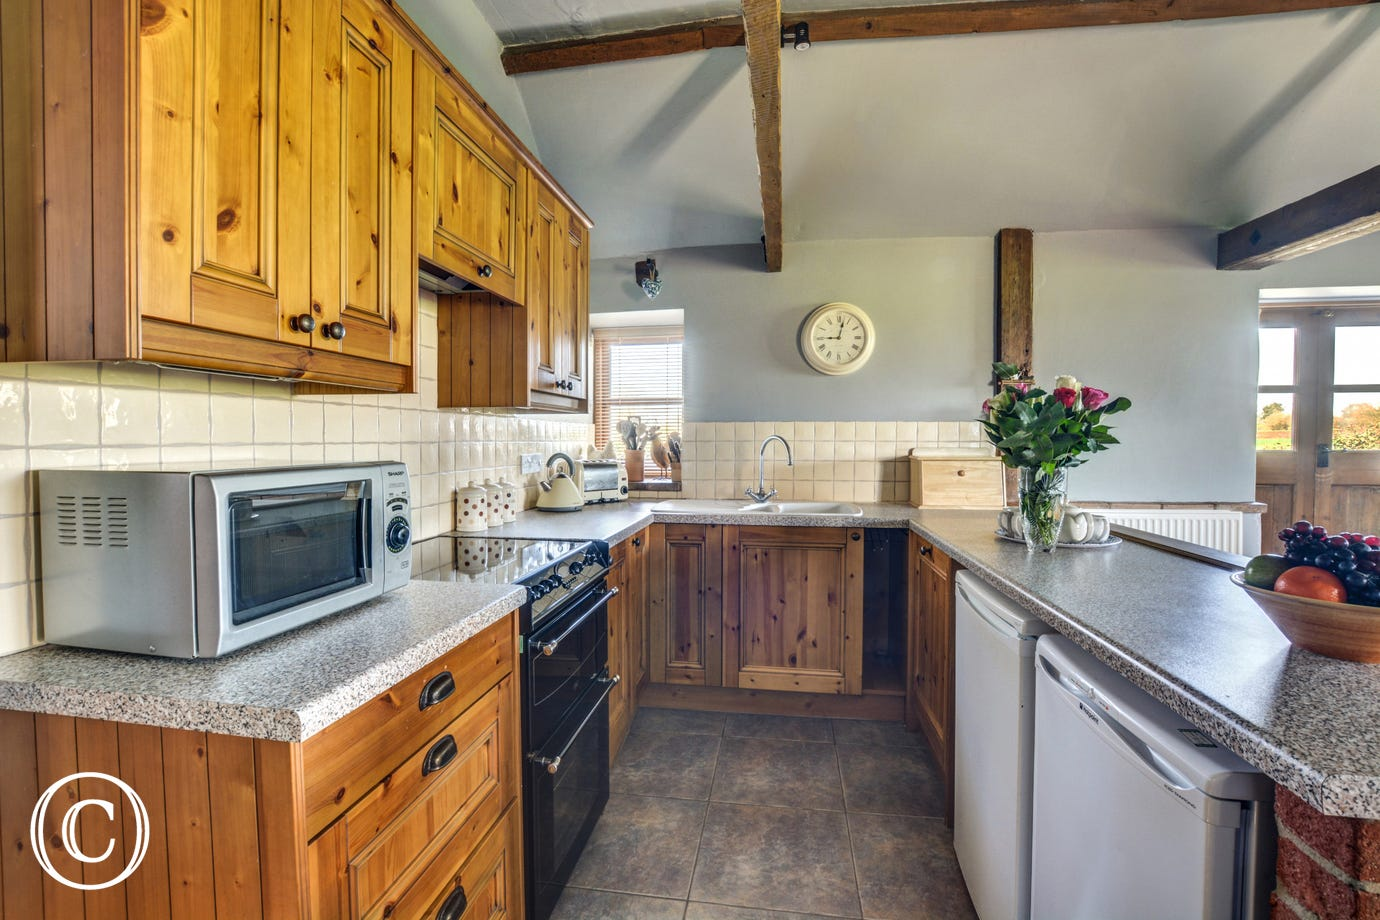 Traditional kitchen with most major appliances and well equipped with the added bonus of an utility room